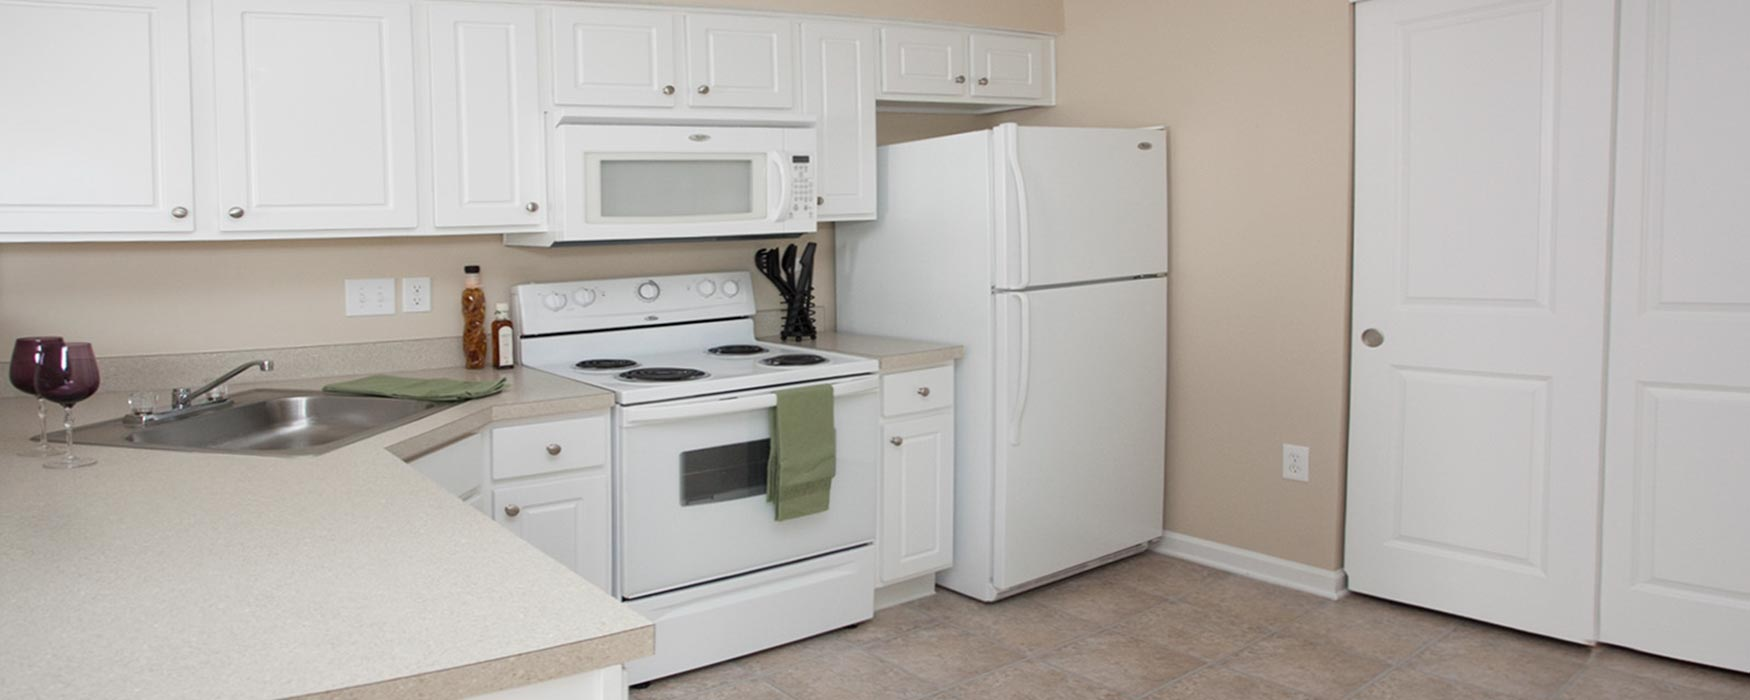 LC Preserve Crossing | Gahanna Apartments | Bentley I Kitchen